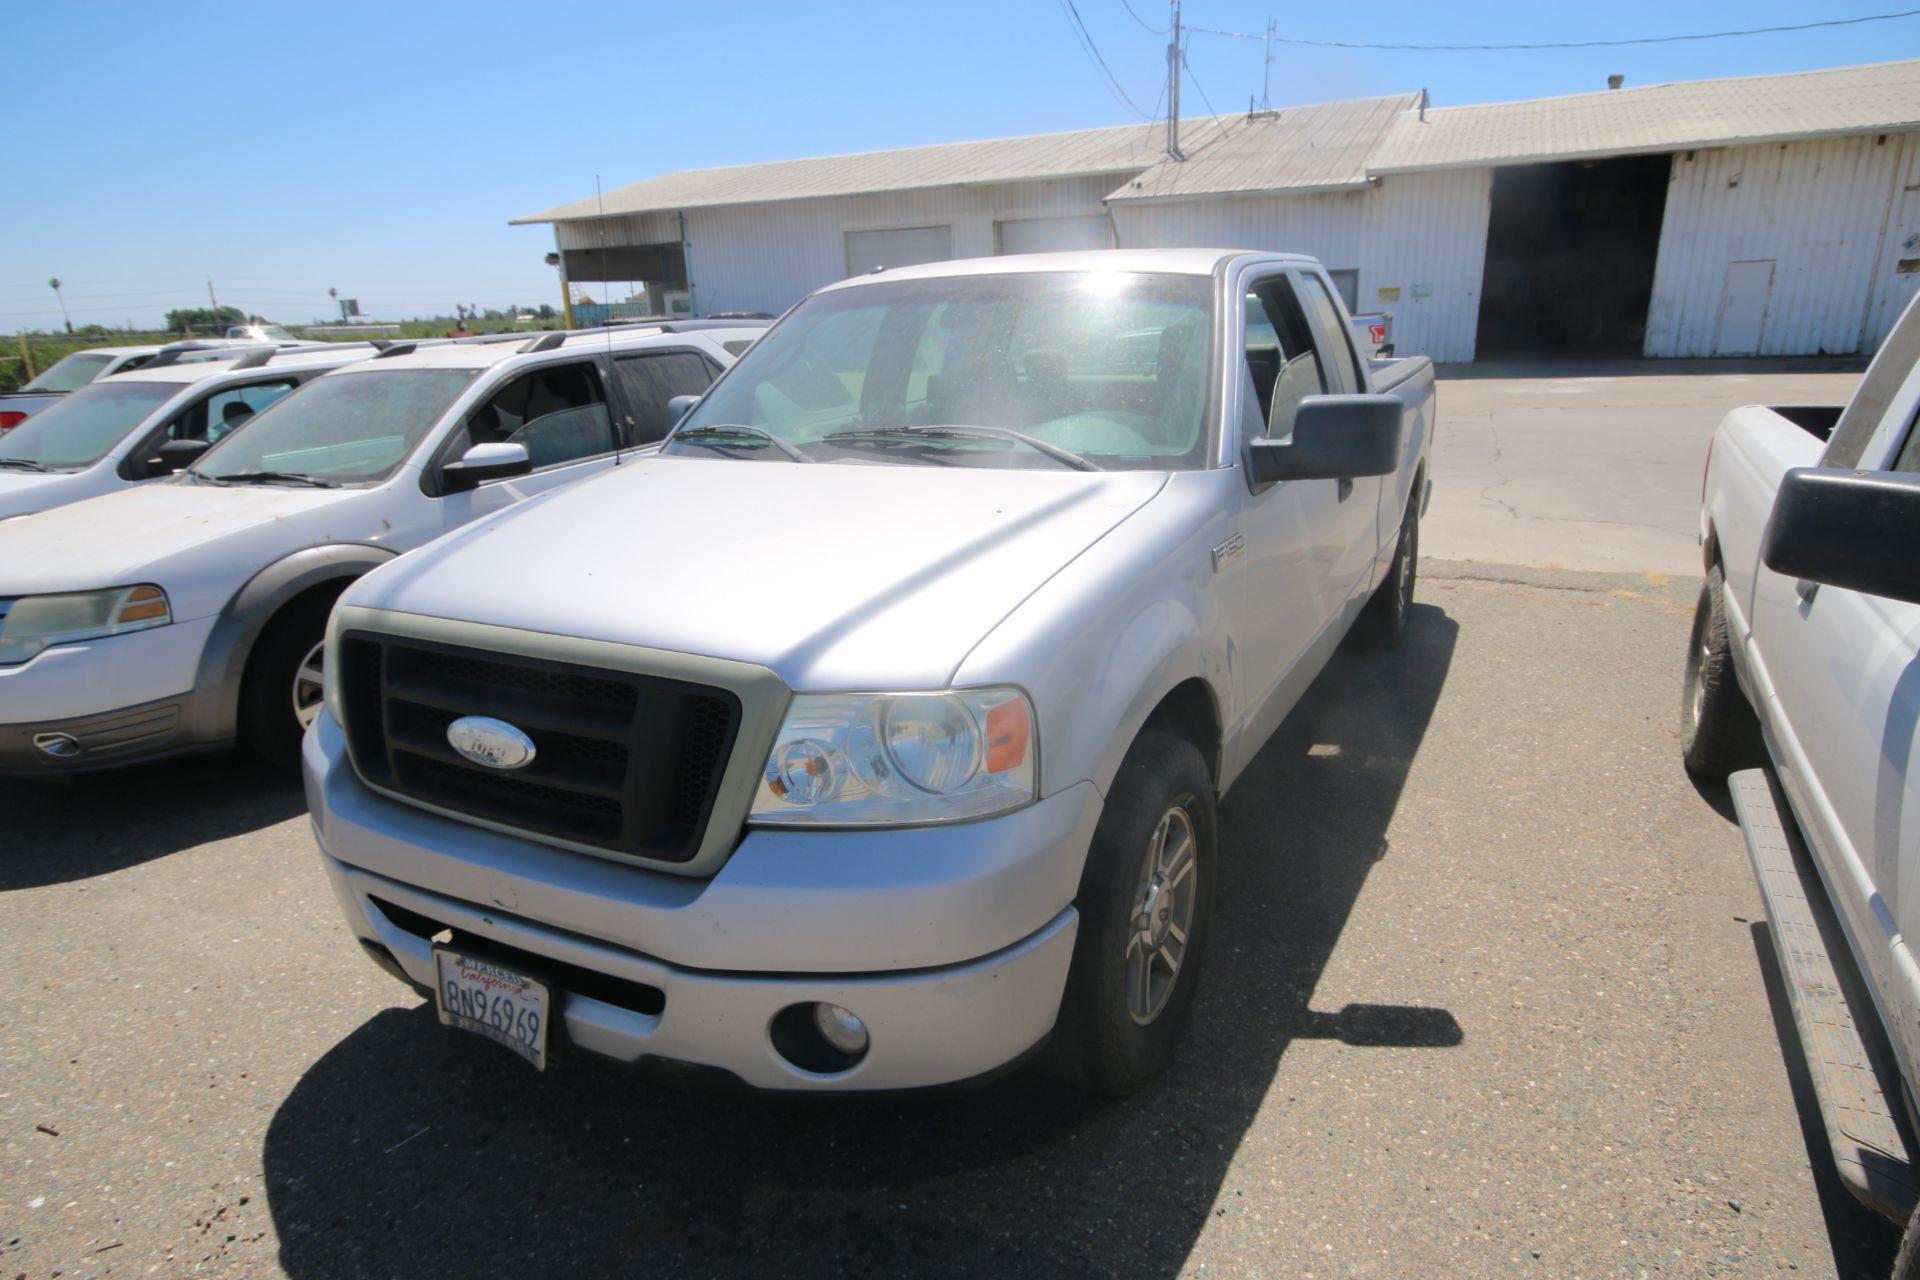 2008 Ford F150 Pick Up Truck, VIN #: 1FTRX12W7BFB9710, with 214,817 Miles, Started Up as of 06/24/